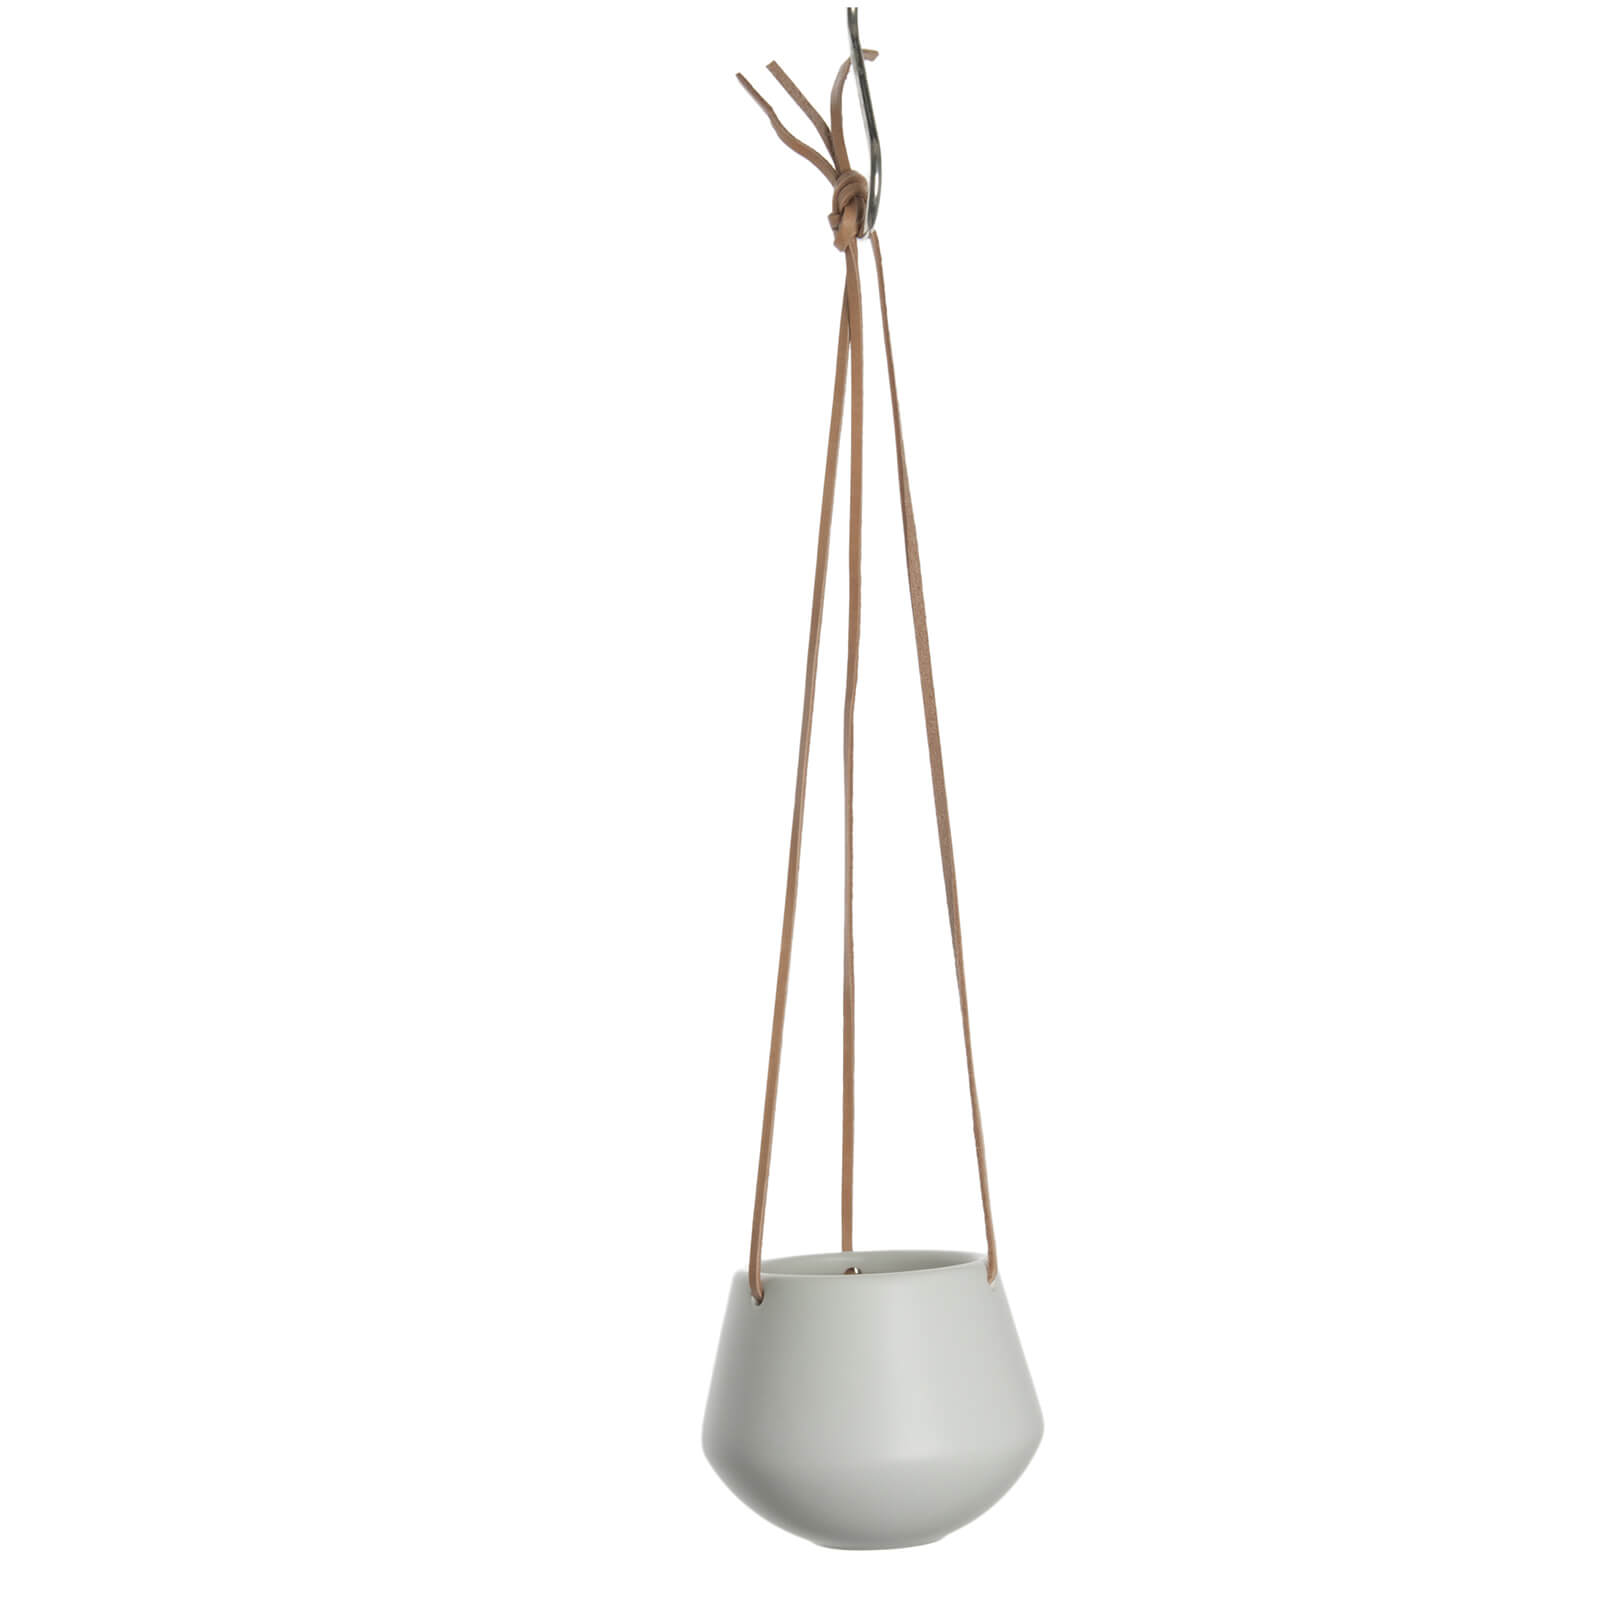 PT Small Ceramic Hanging Pot Skittle - White